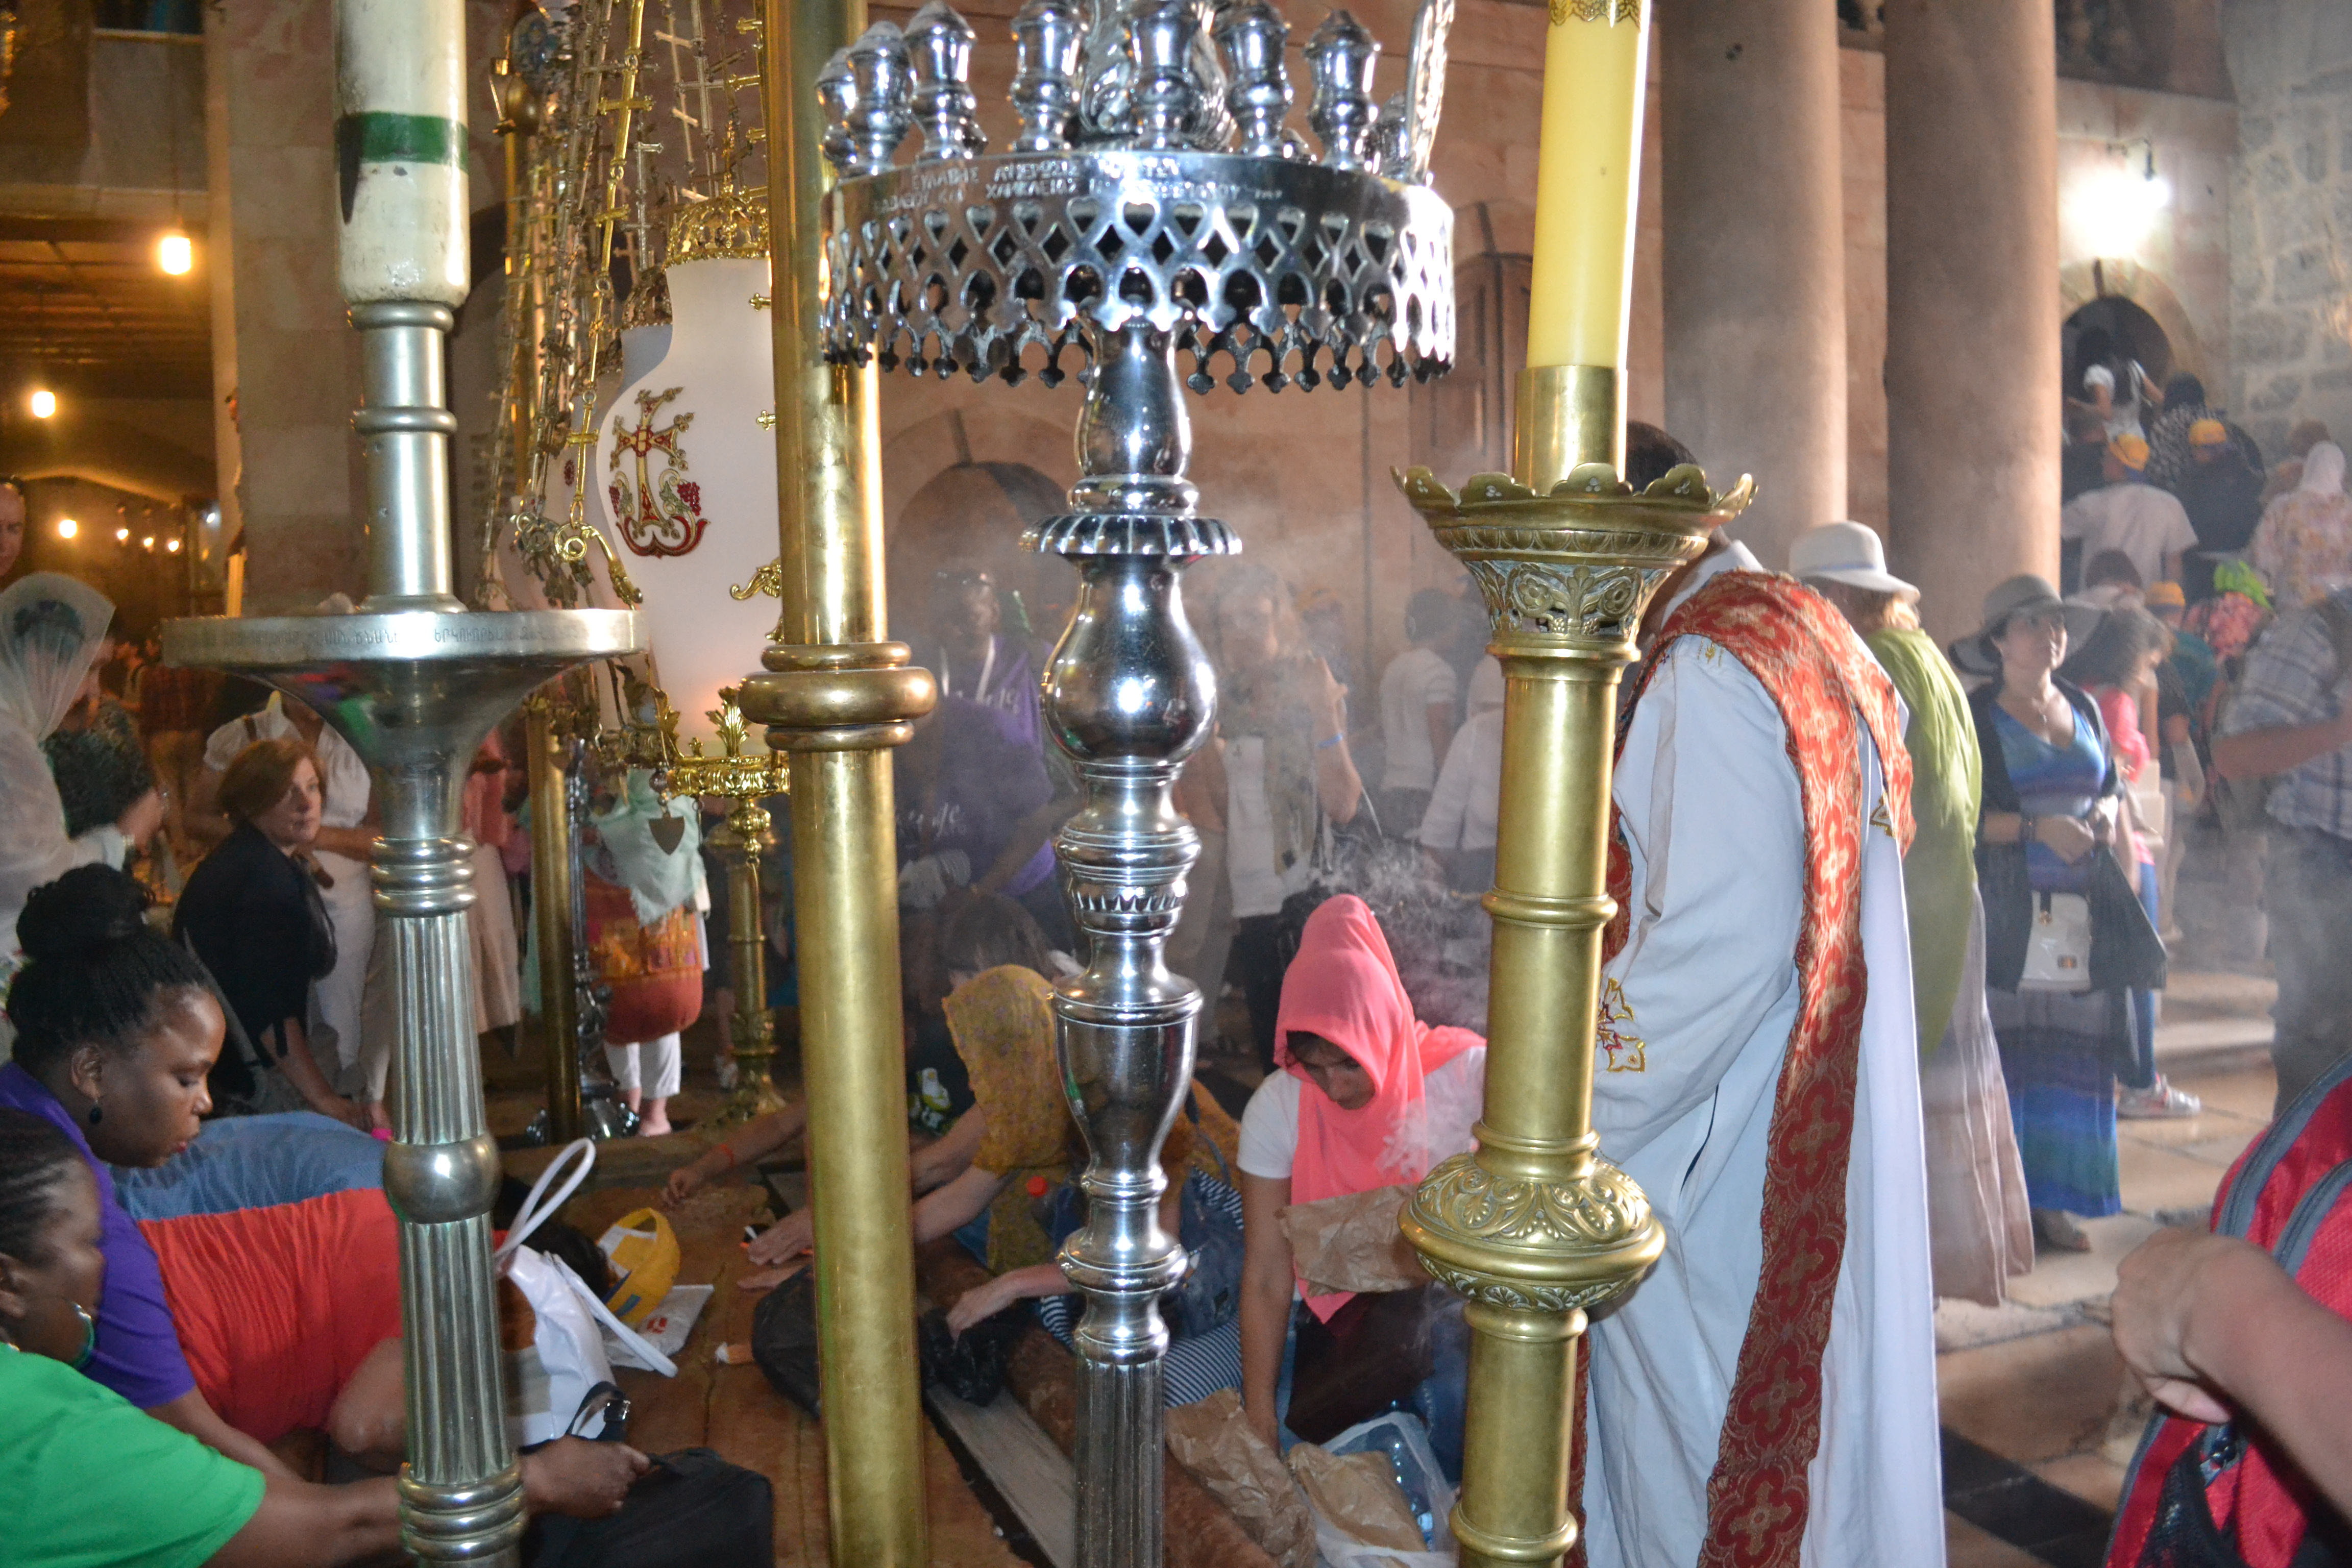 Holiness at the Holy Sepulchre